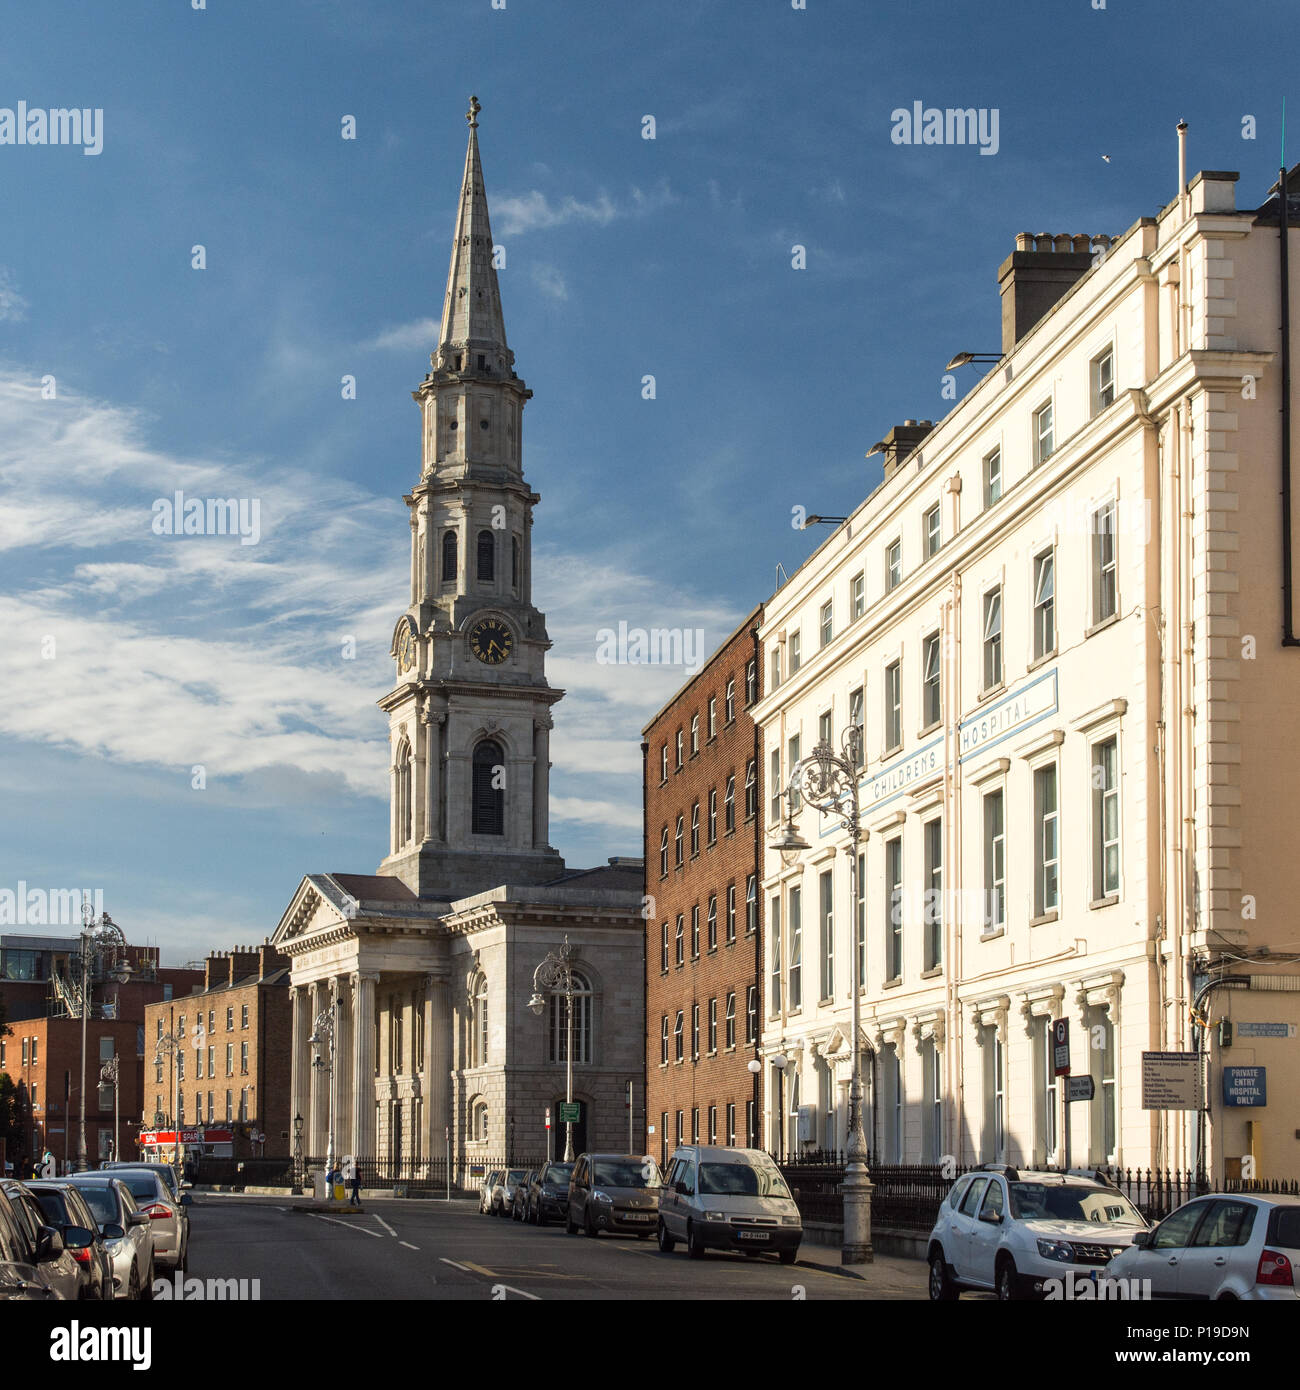 Dublin, Ireland - September 17, 2016: The former church of St George and the Children's Hospital on Temple Street in Dublin's Georgian north central n - Stock Image